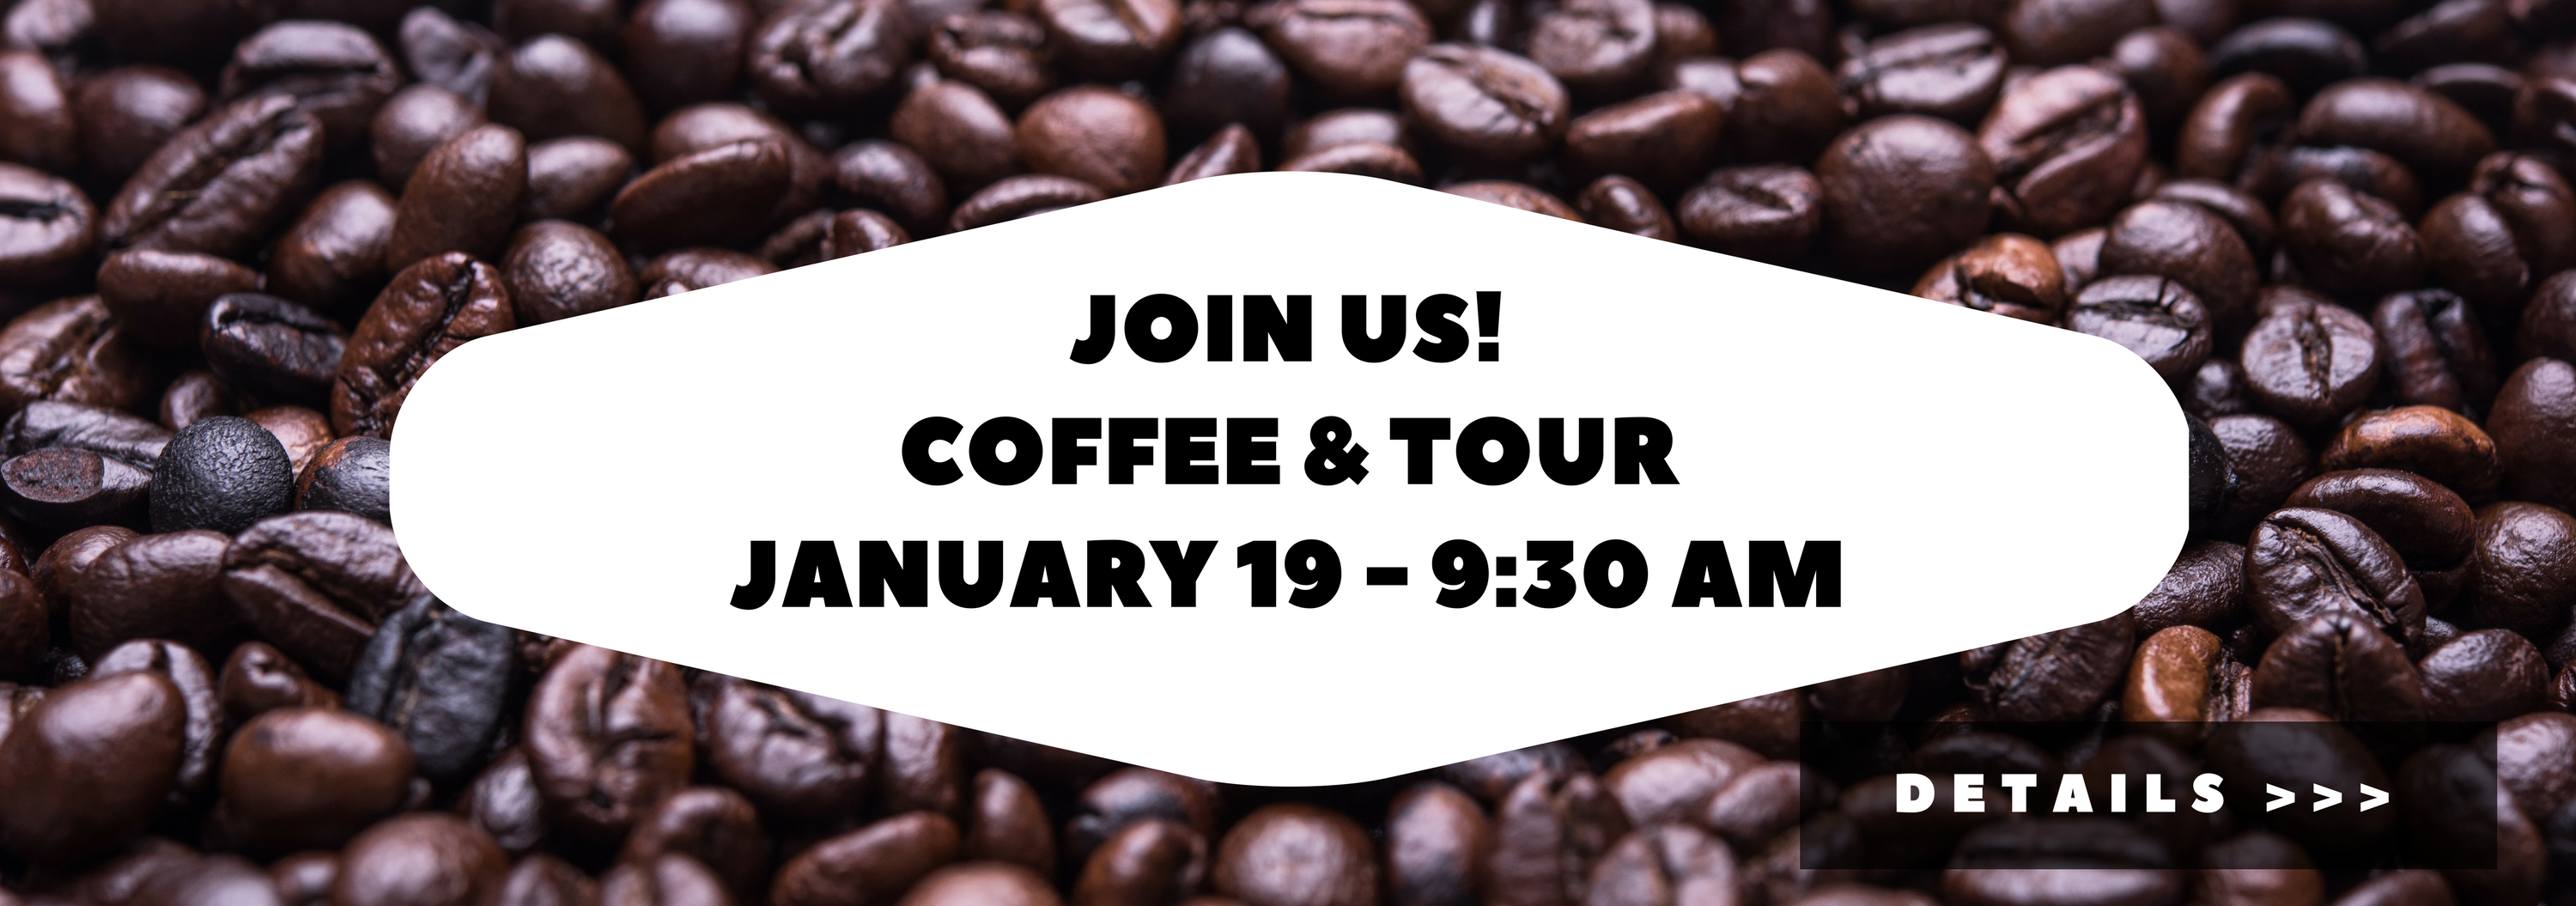 Coffee Tours Template – Jan